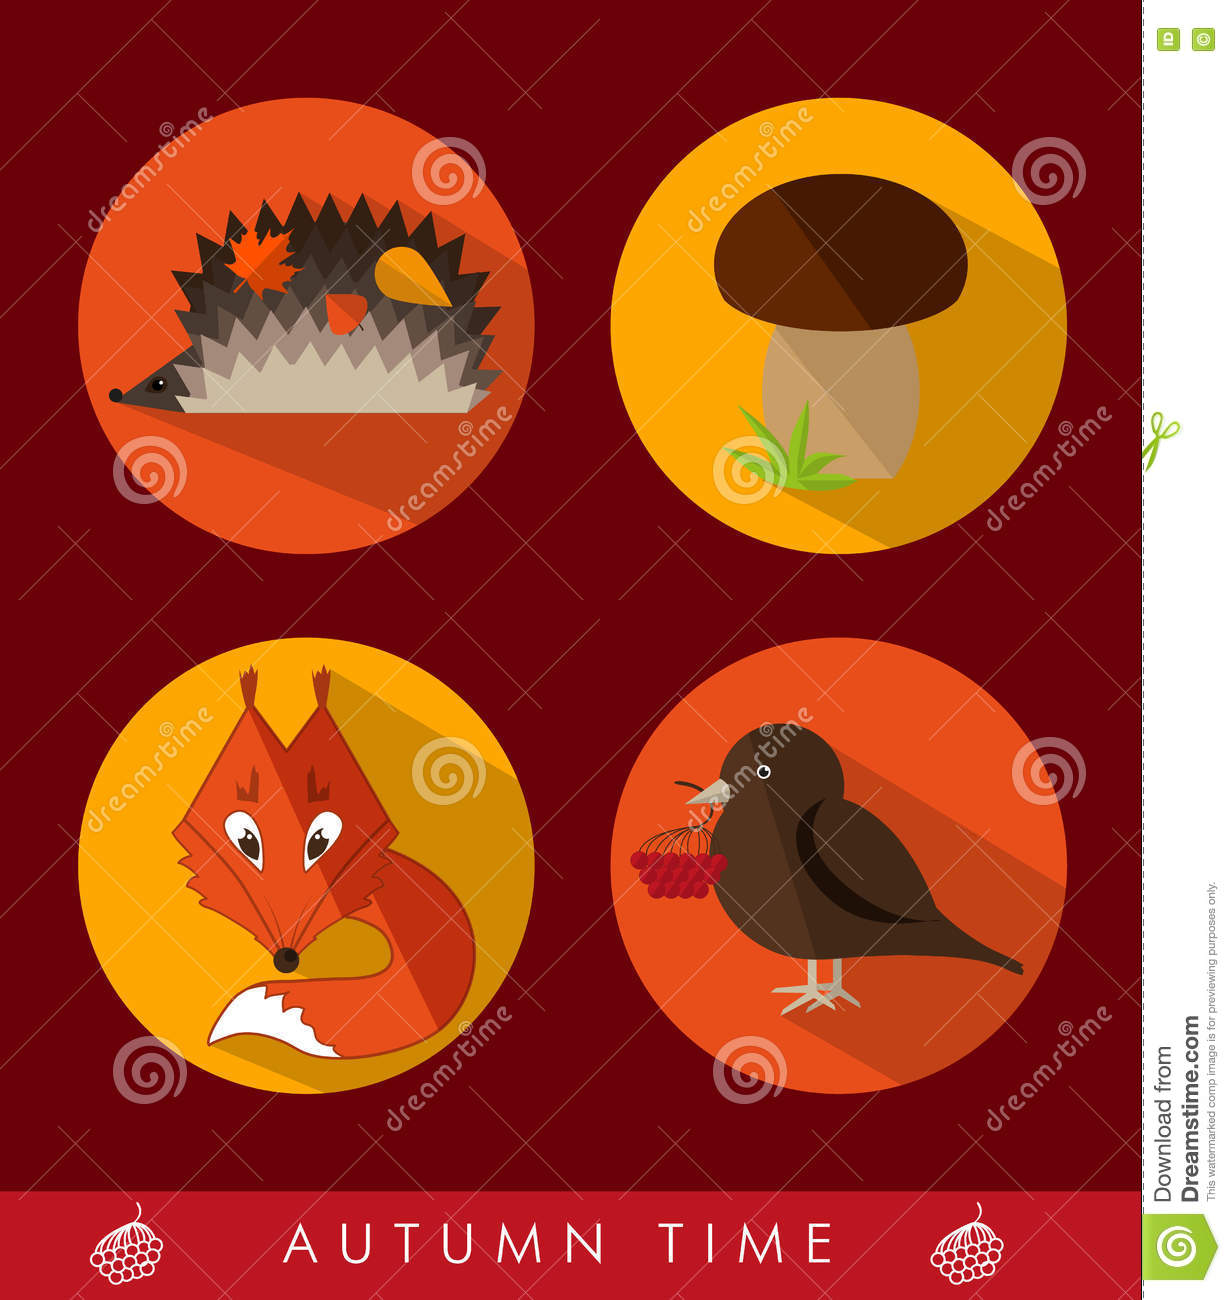 Red fox cartoons illustrations vector stock images 1893 pictures to download from - Autumn plowing time all set for winter ...